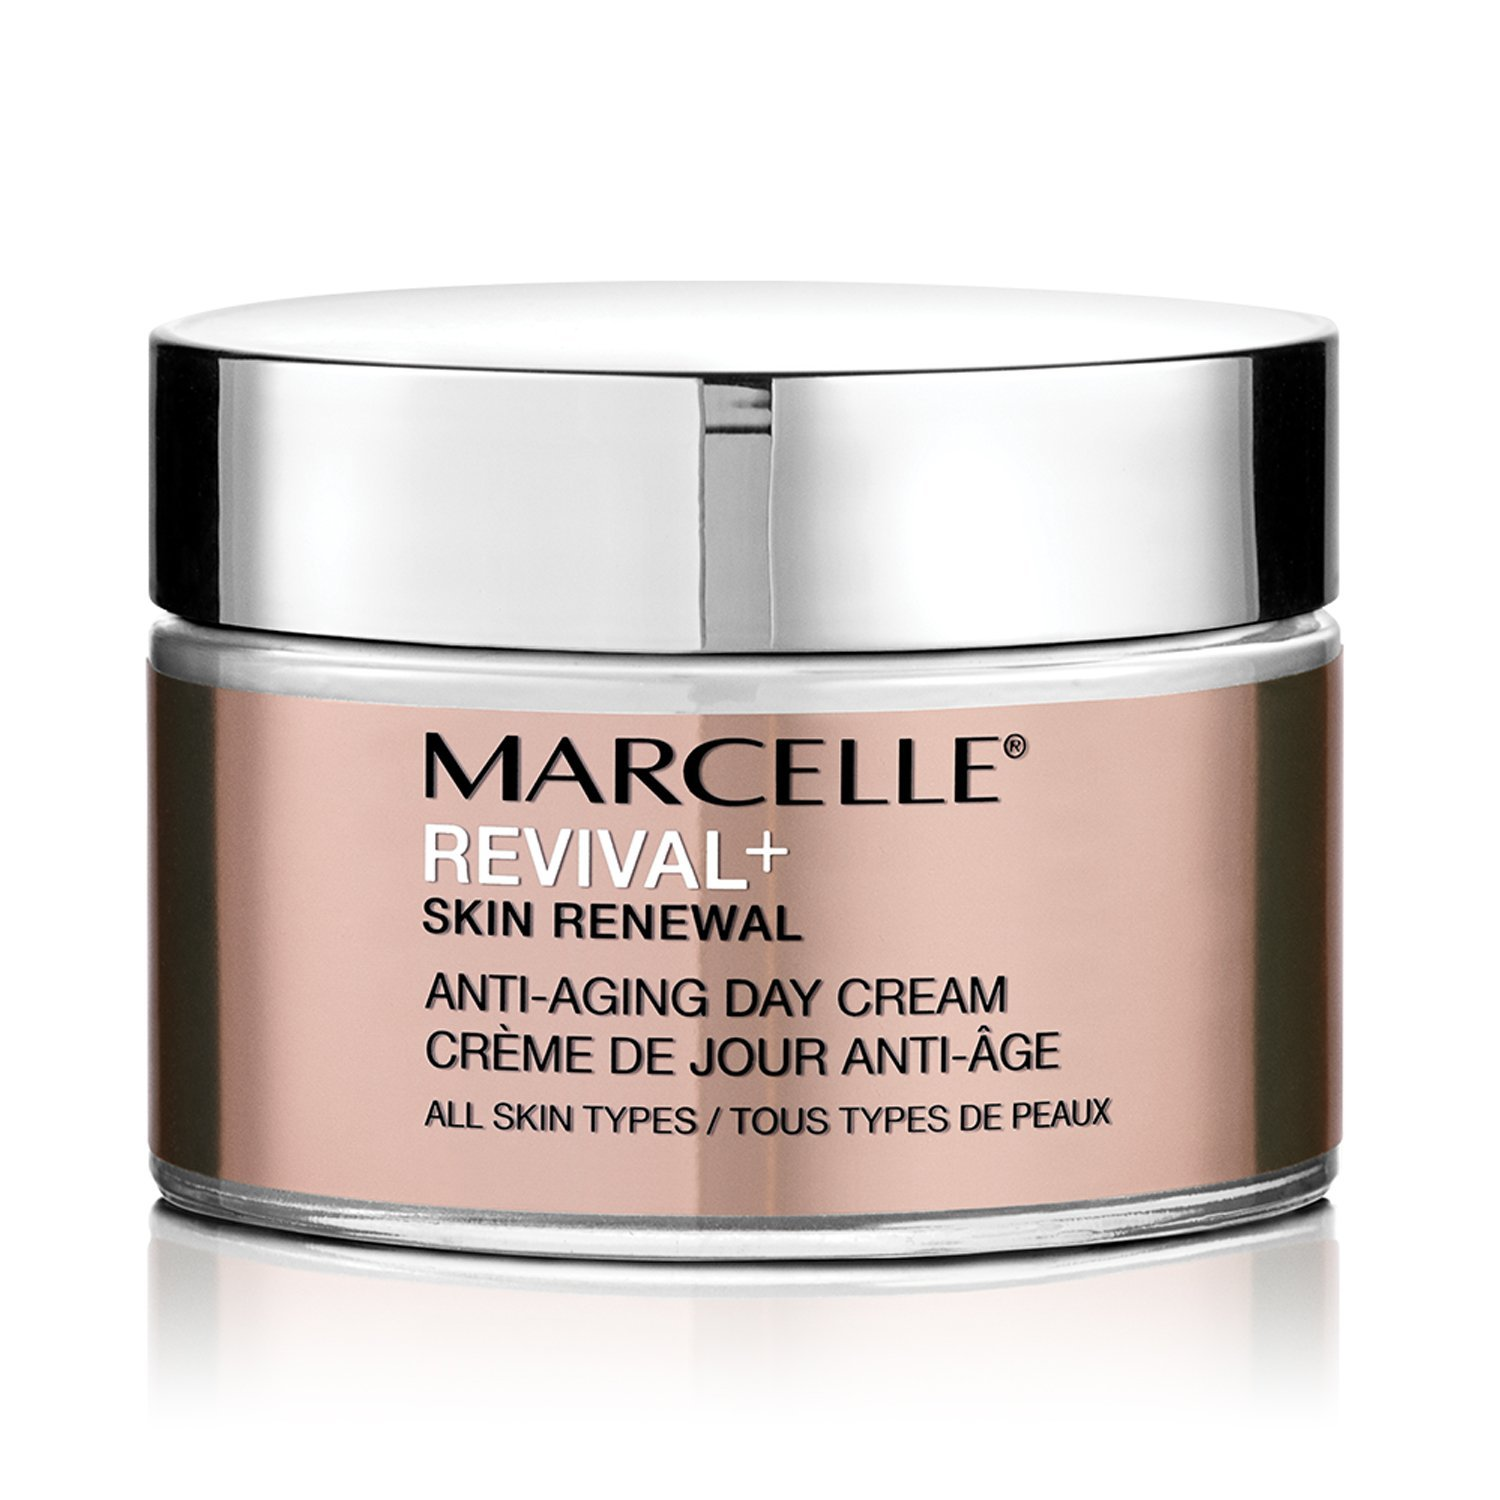 Marcelle Revival+ Skin Renewal Anti-Aging Day Cream, Hypoallergenic and Fragrance-Free, 1.7 fl oz